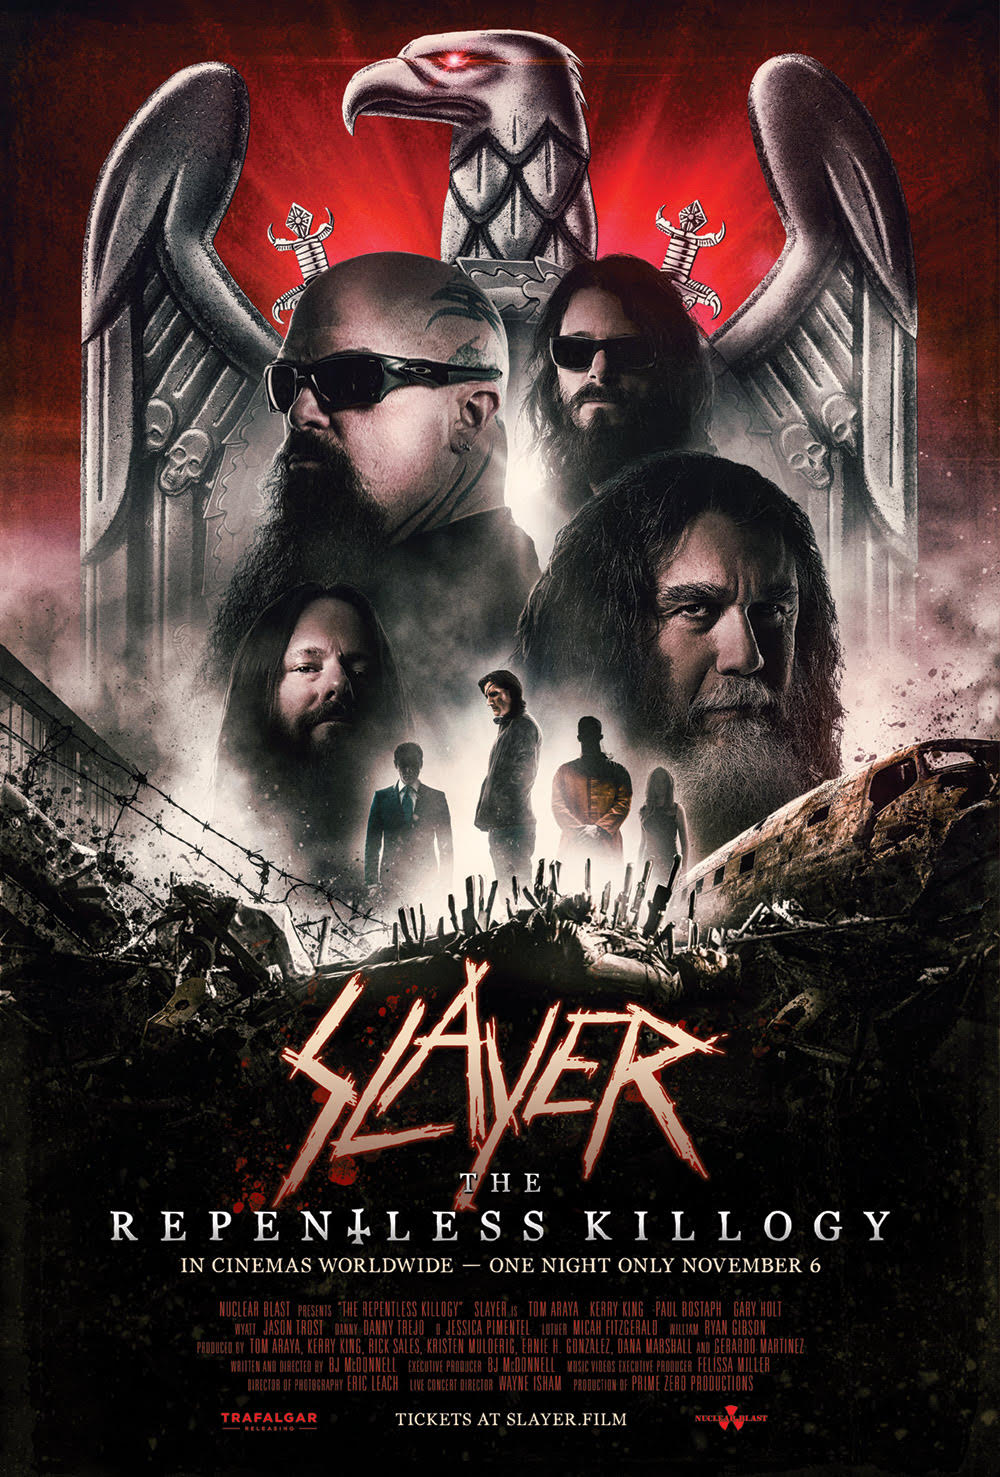 Repentless Killology Poster - Trailer: Parte do filme de terror, Parte do concerto, SLAYER: THE KILLOGY REPENTLESS para a tela 1 Night Only!